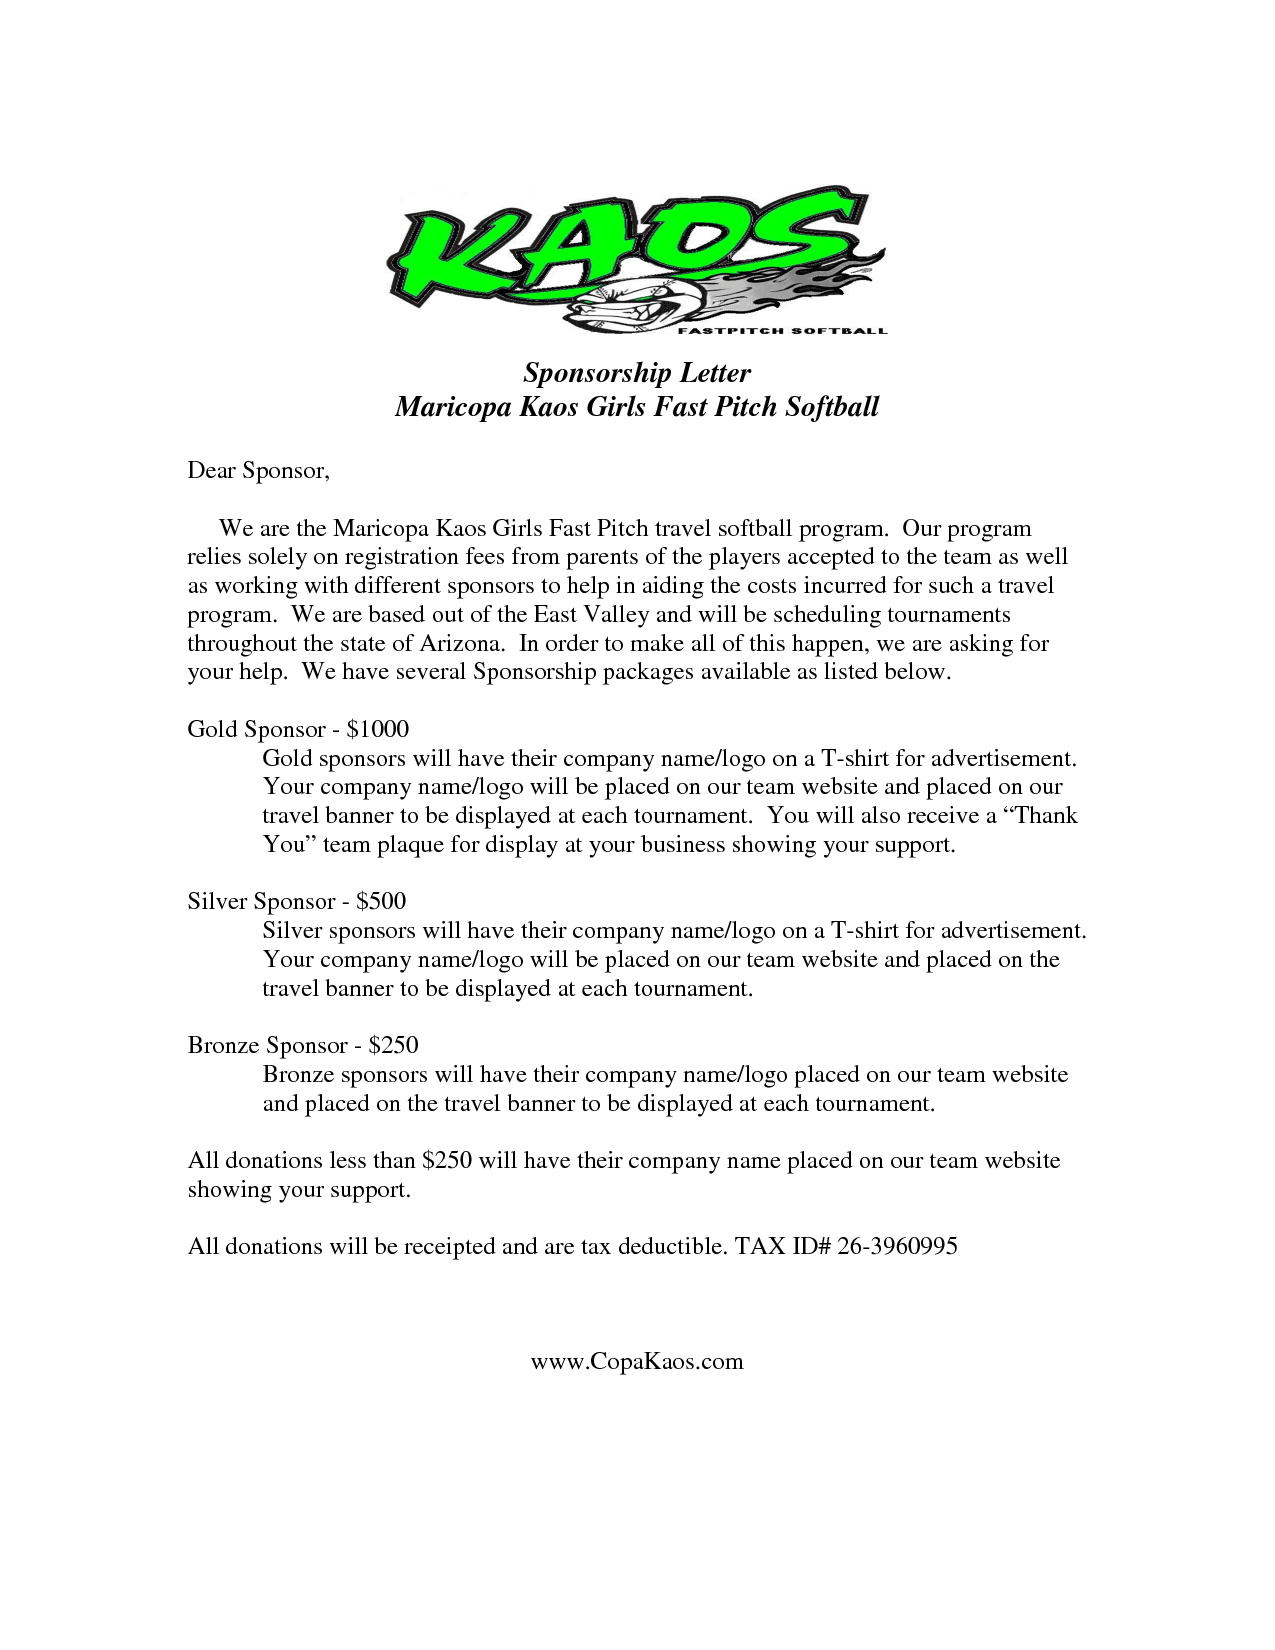 Boy Scout Donation Letter Template - Image Result for Sample Sponsor Request Letter Donation